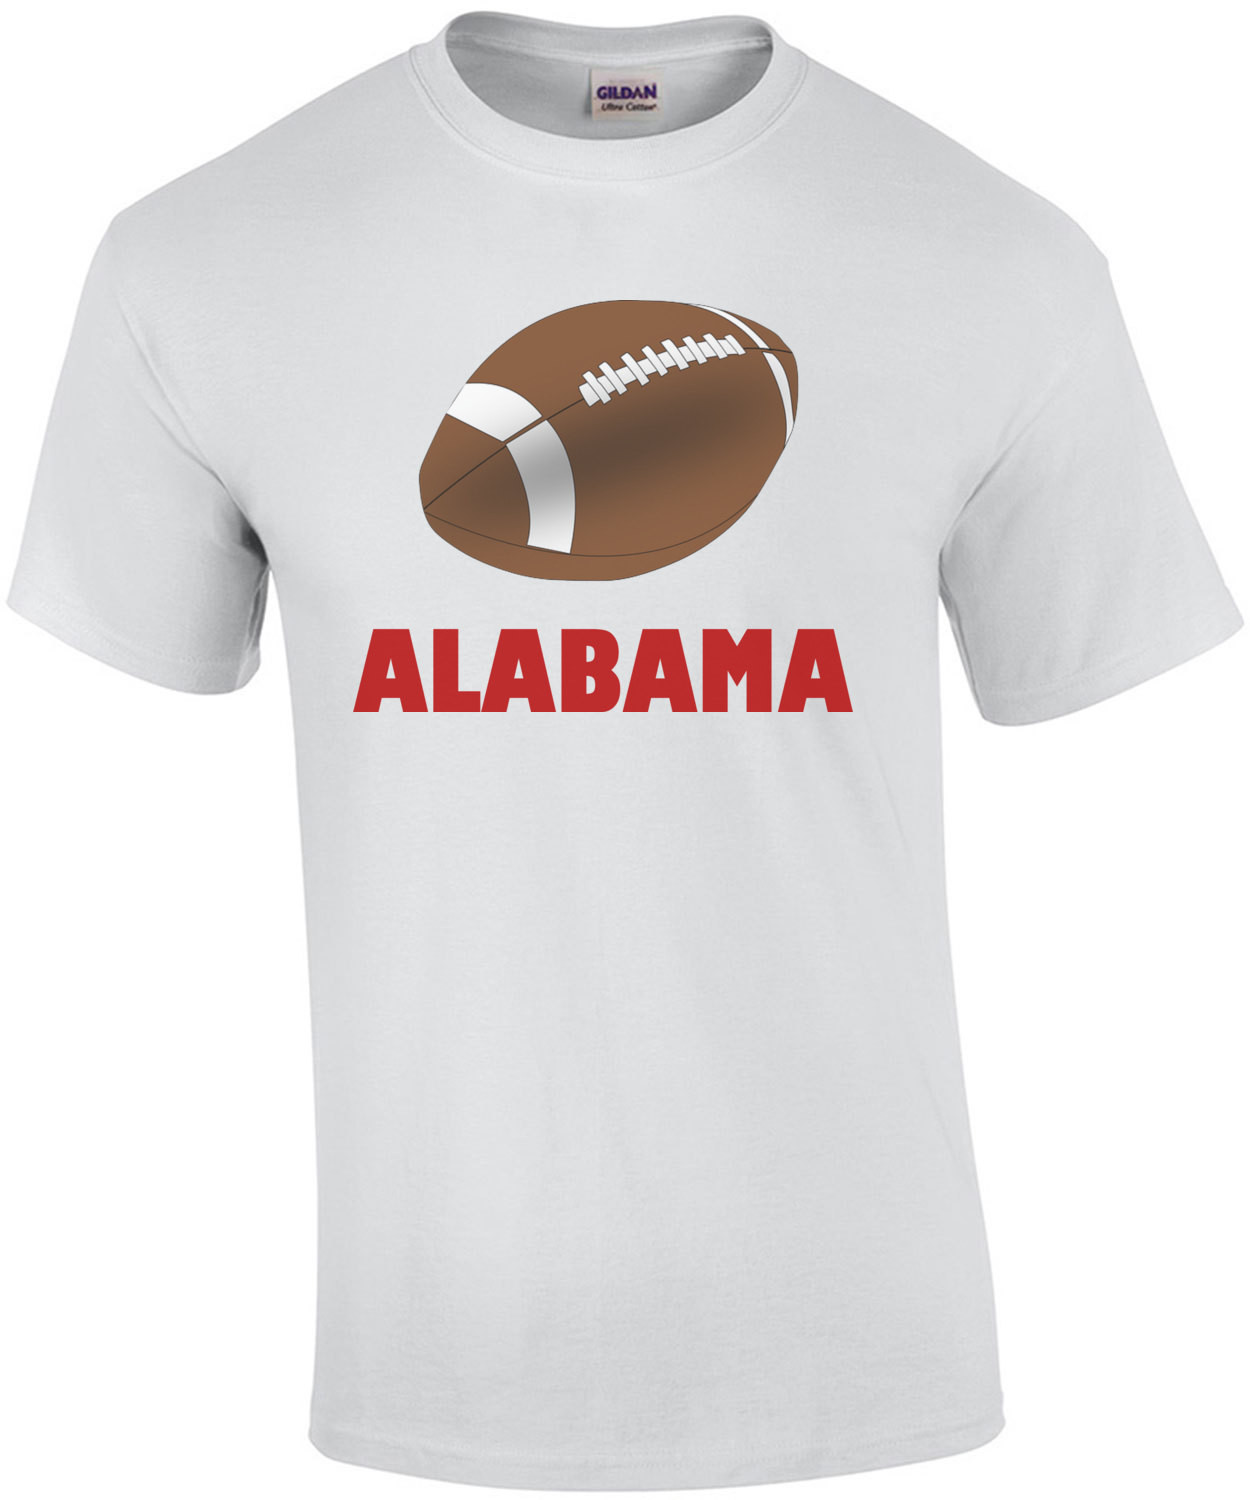 Alabama Football - Alabama T-Shirt